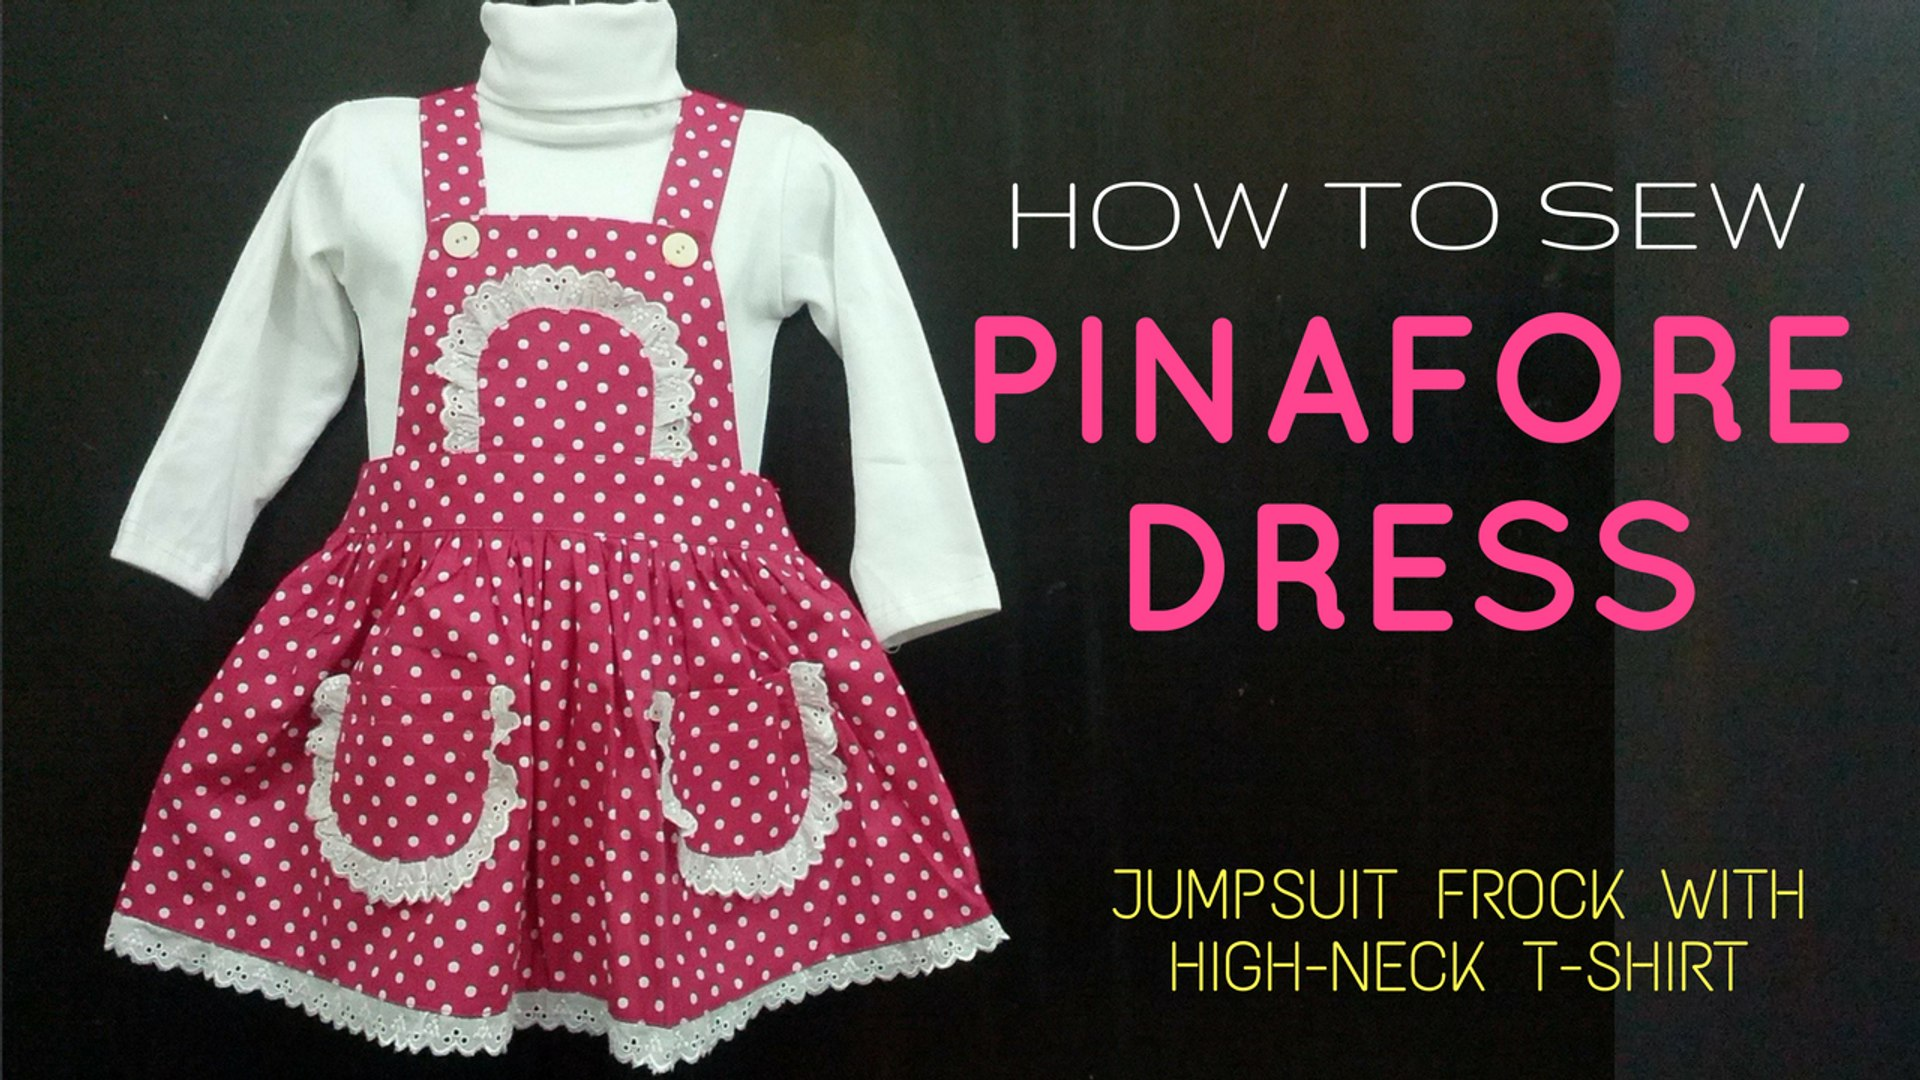 daa6d29d50202 How to Sew Jumpsuit Frock | Make Vintage Pinafore